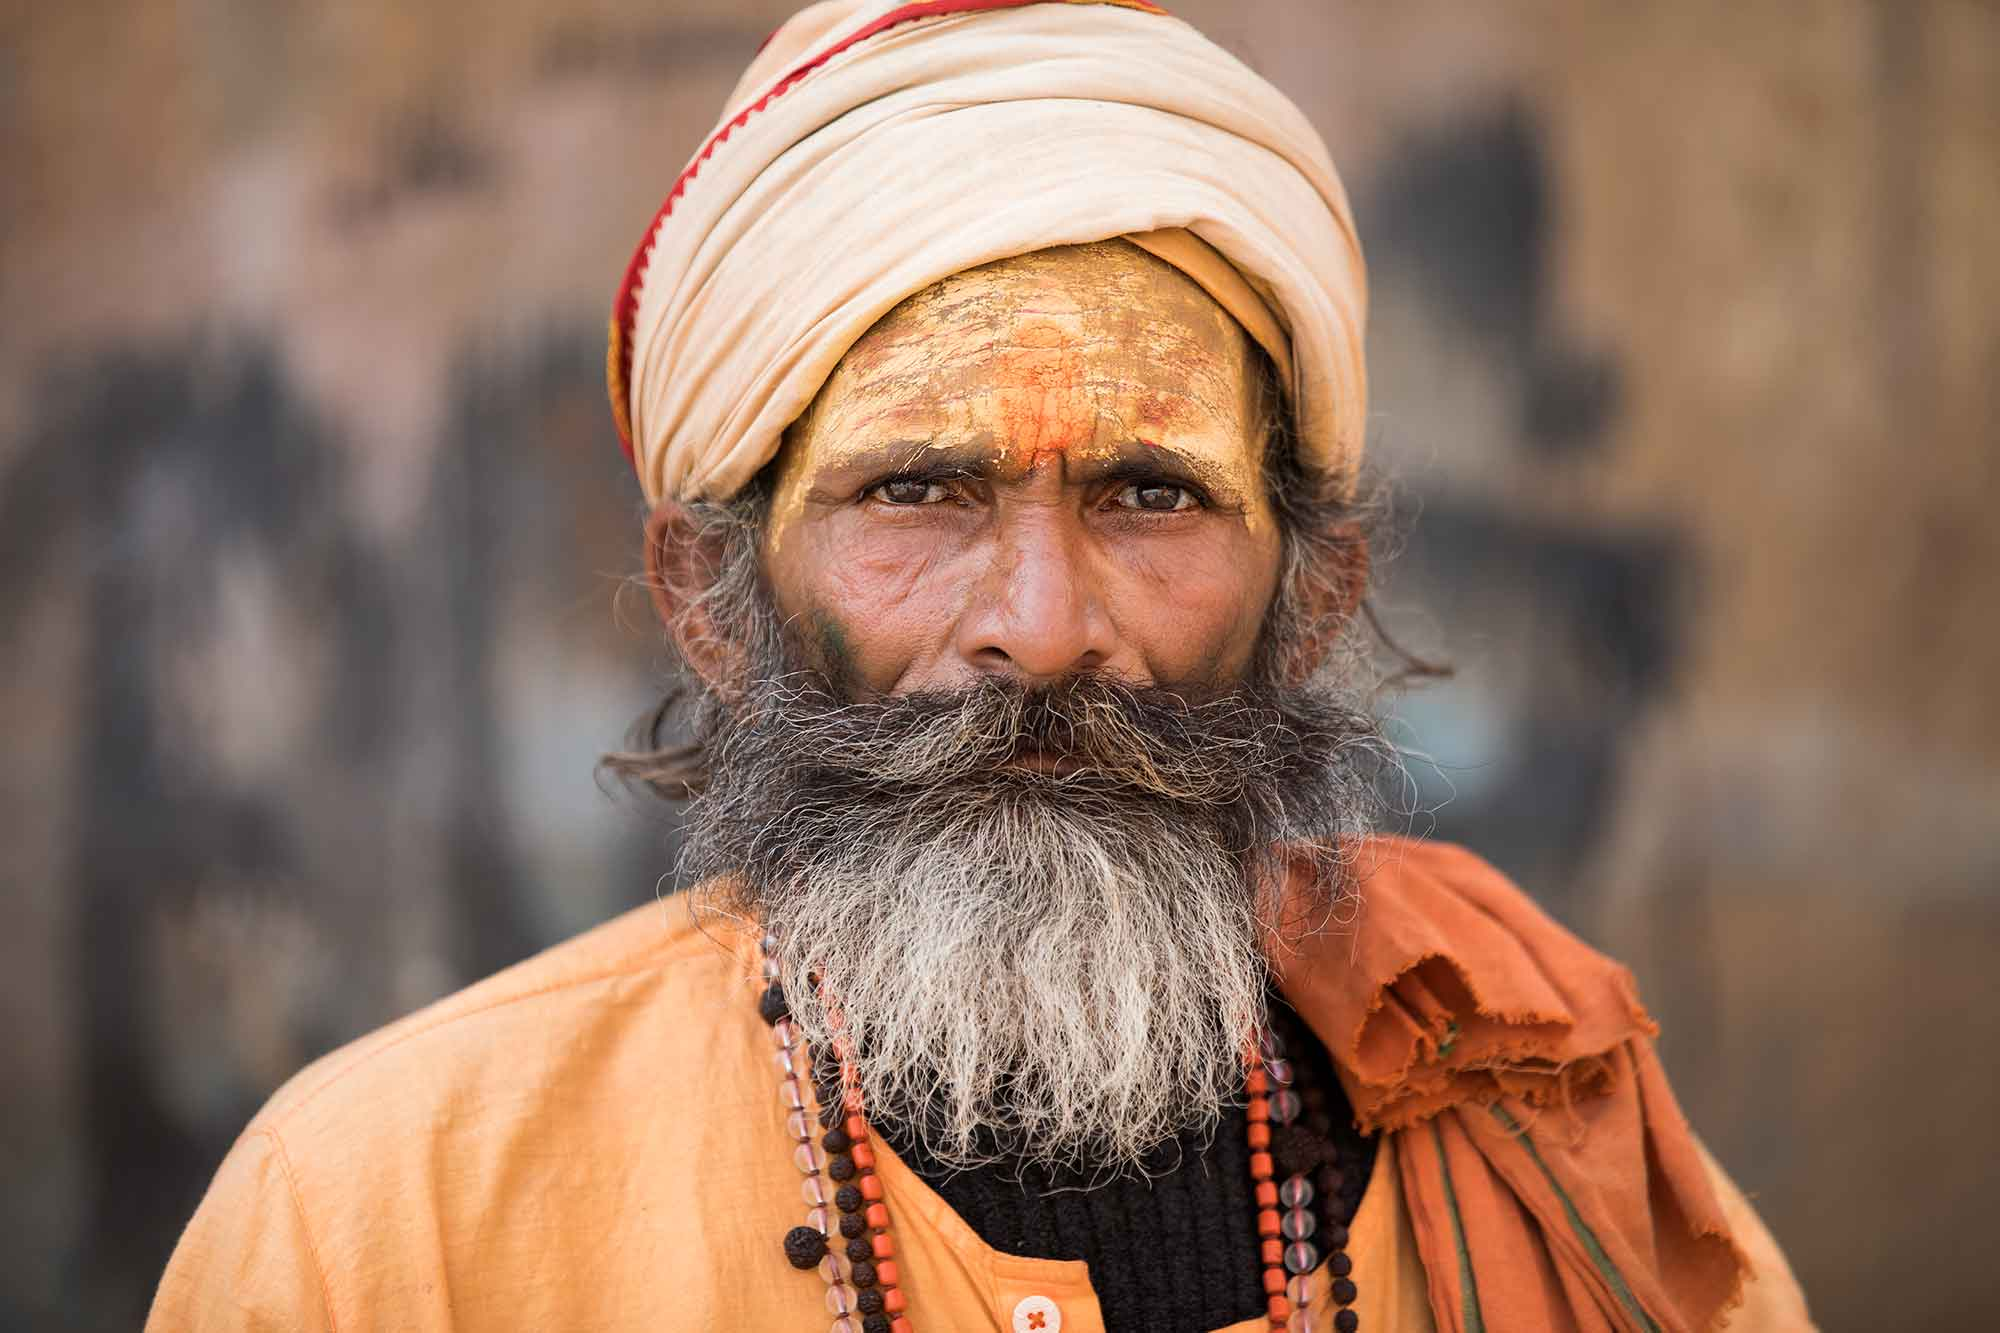 sadhu-portrait-varanasi-india-5